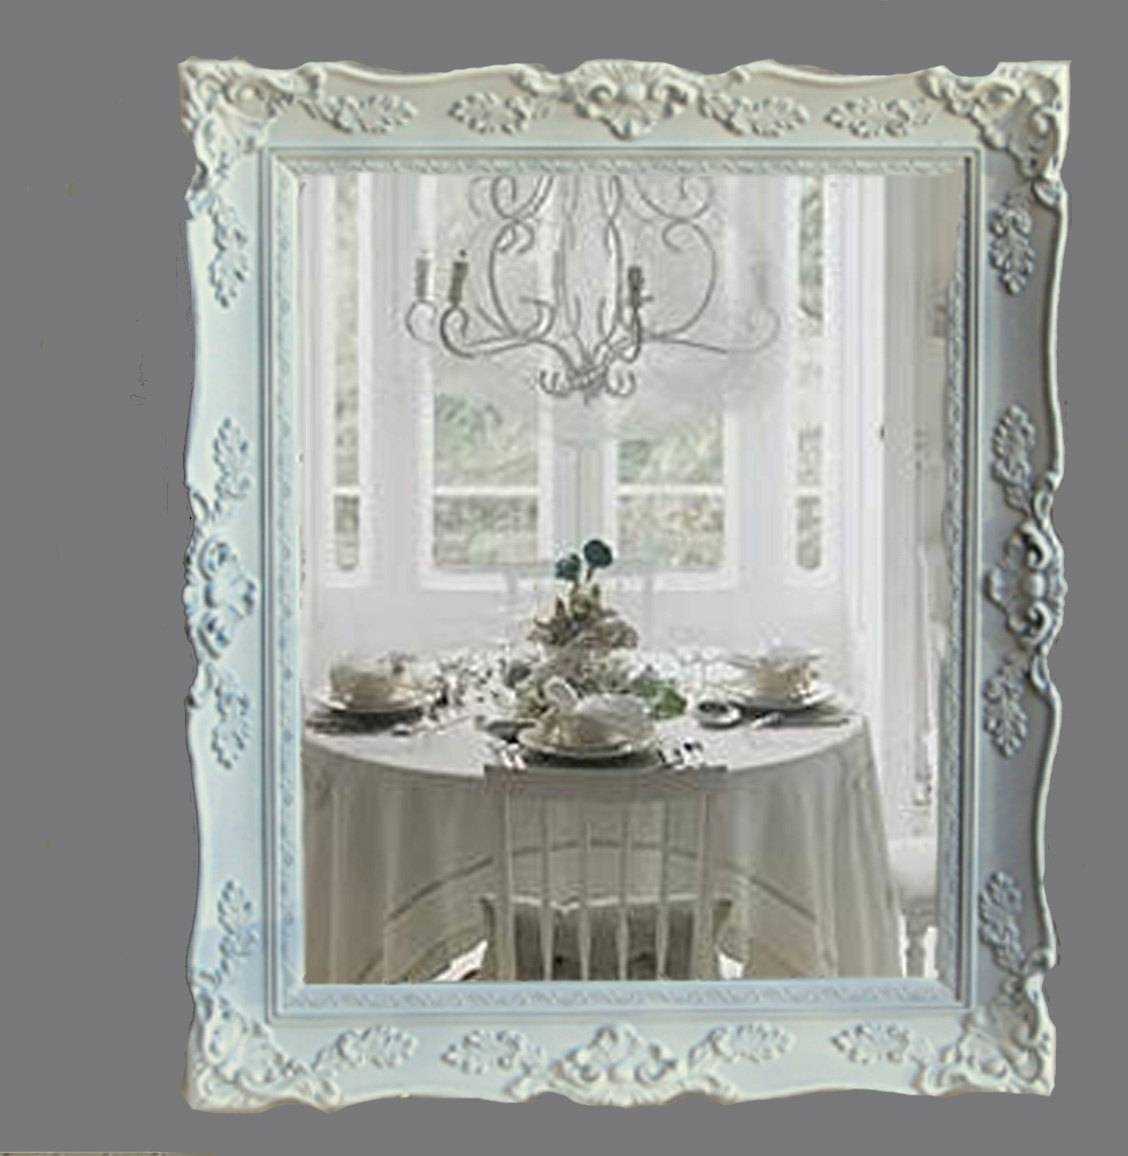 Shabby Chic Mirrors Images - Reverse Search pertaining to Mirrors Shabby Chic (Image 21 of 25)